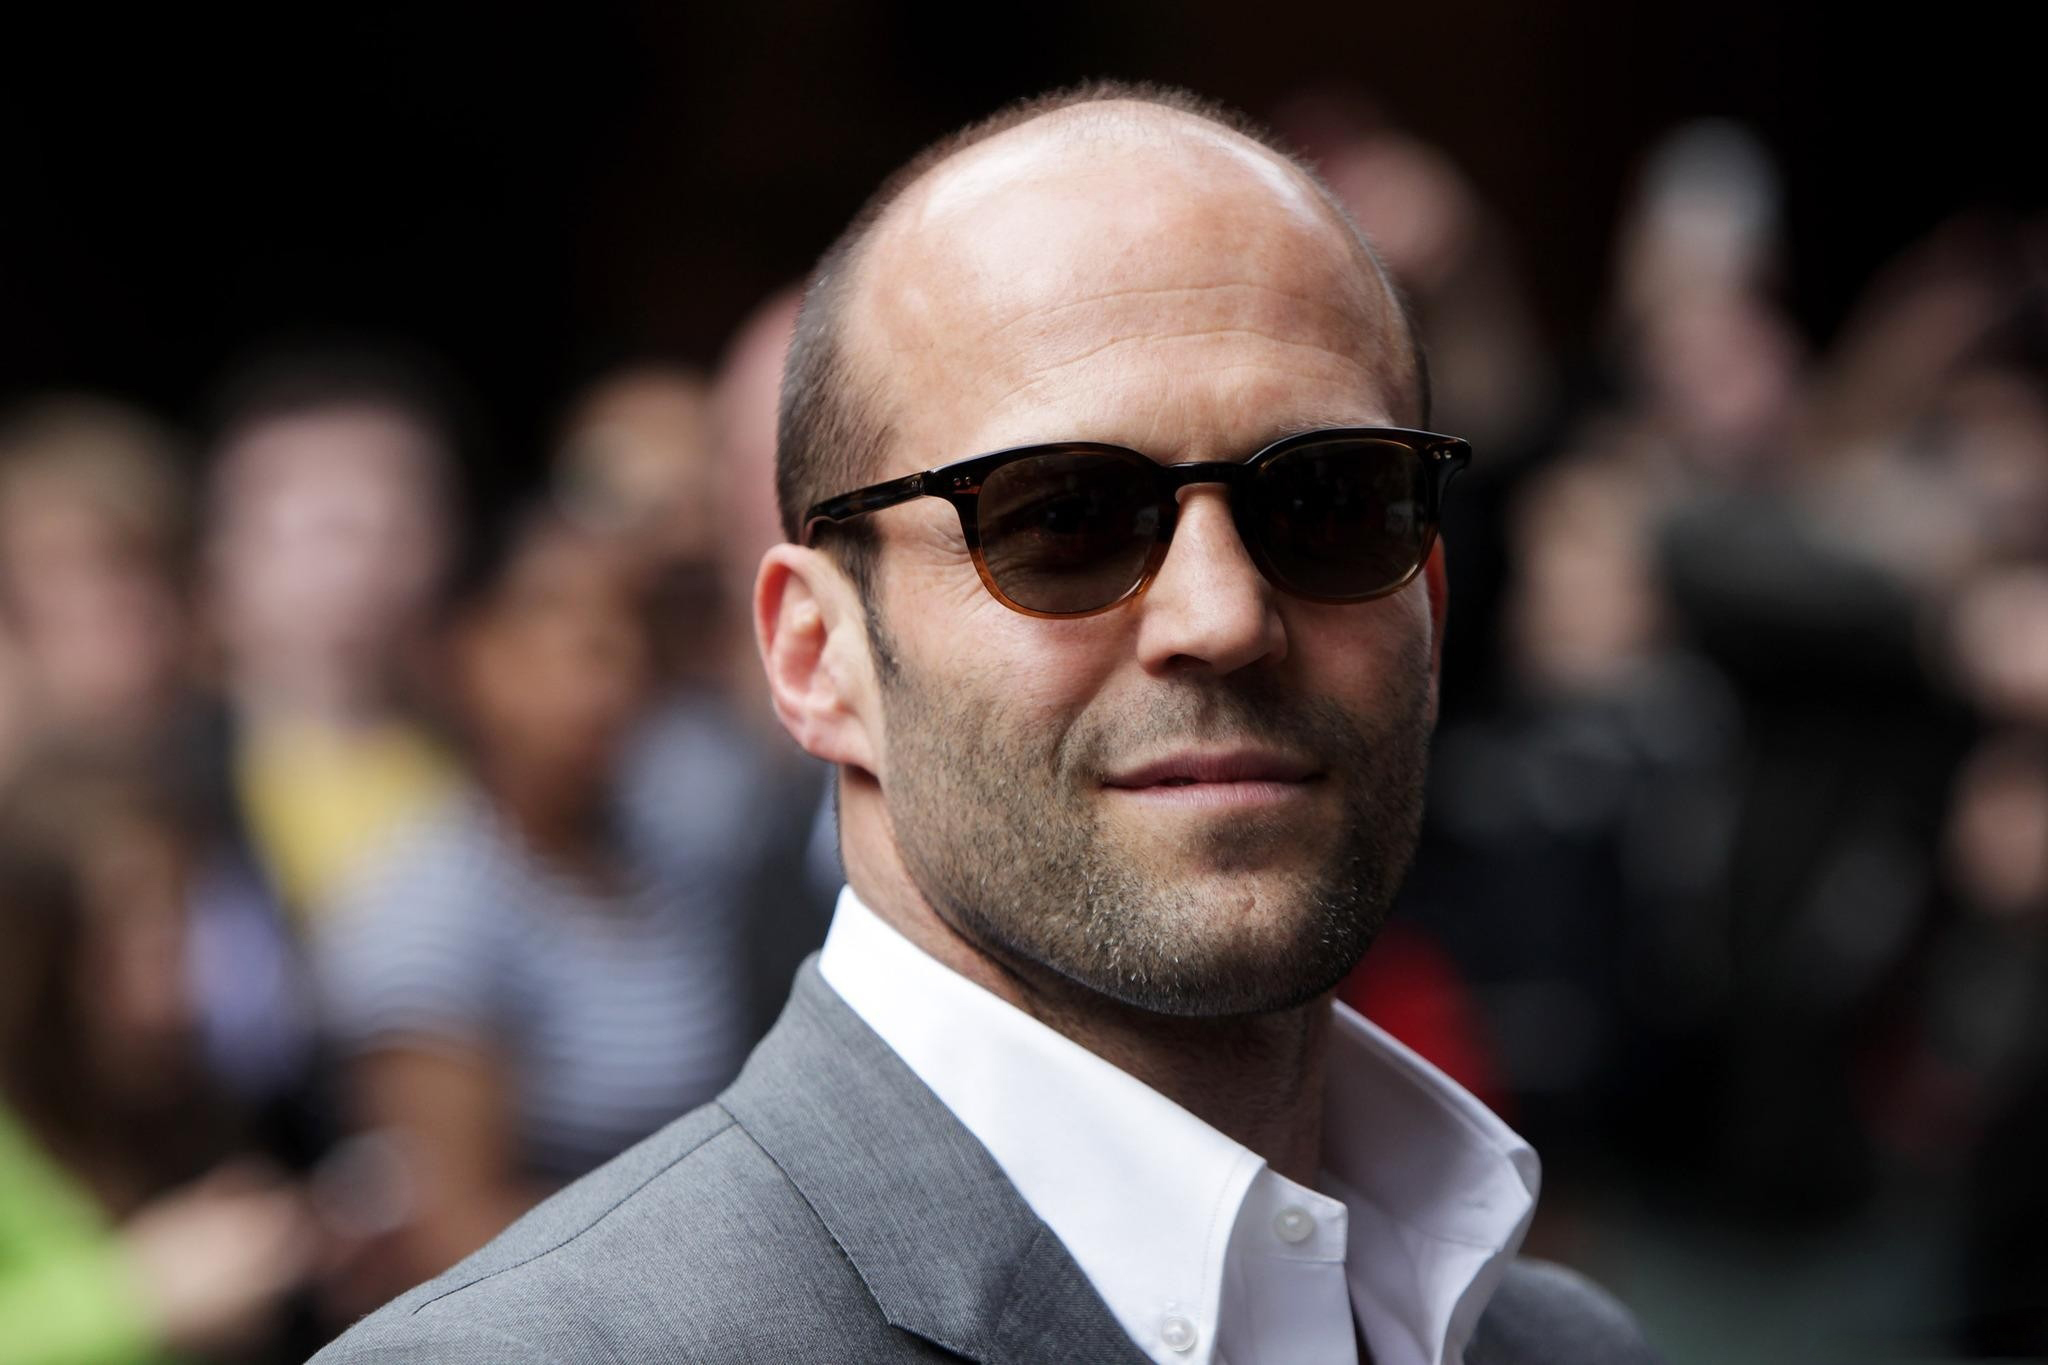 Jason Statham Suit Images Facebook Cover Popopics Com